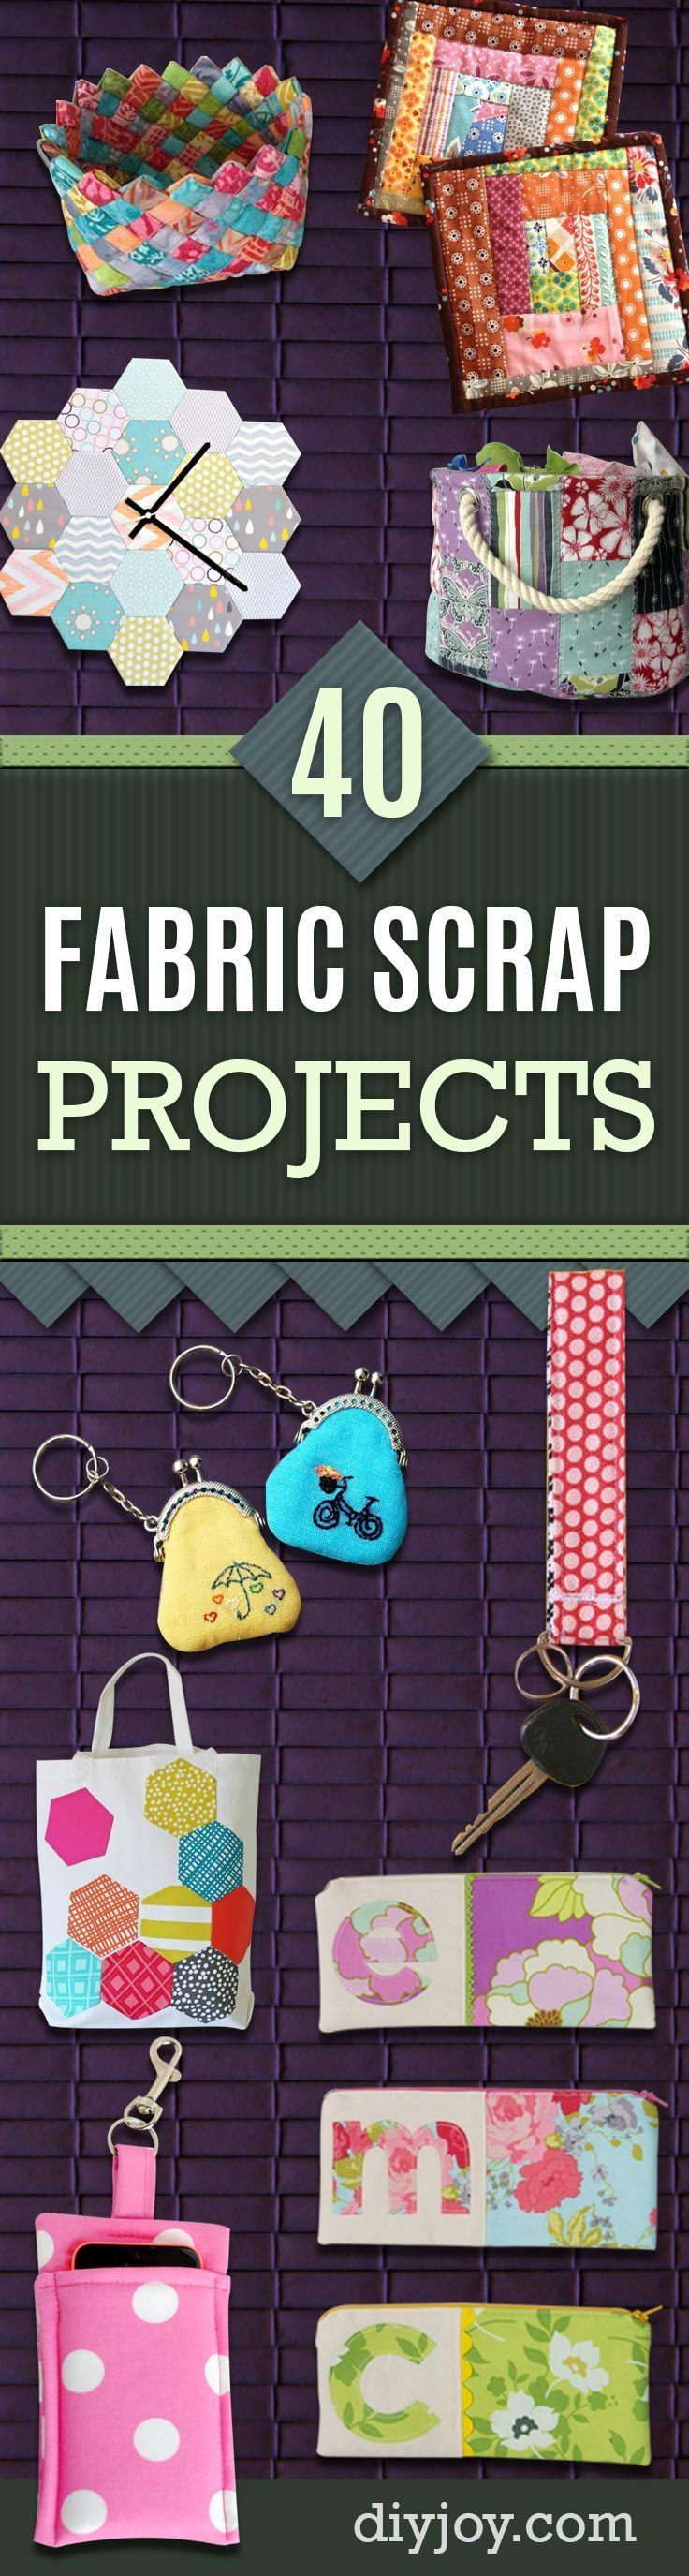 Cool Crafts You Can Make With Fabric Scraps - Creative DIY Sewing Projects and Things to Do With Leftover Fabric and Even Old Clothes That Are Too Small - Ideas, Tutorials and Patterns diyjoy.com/...